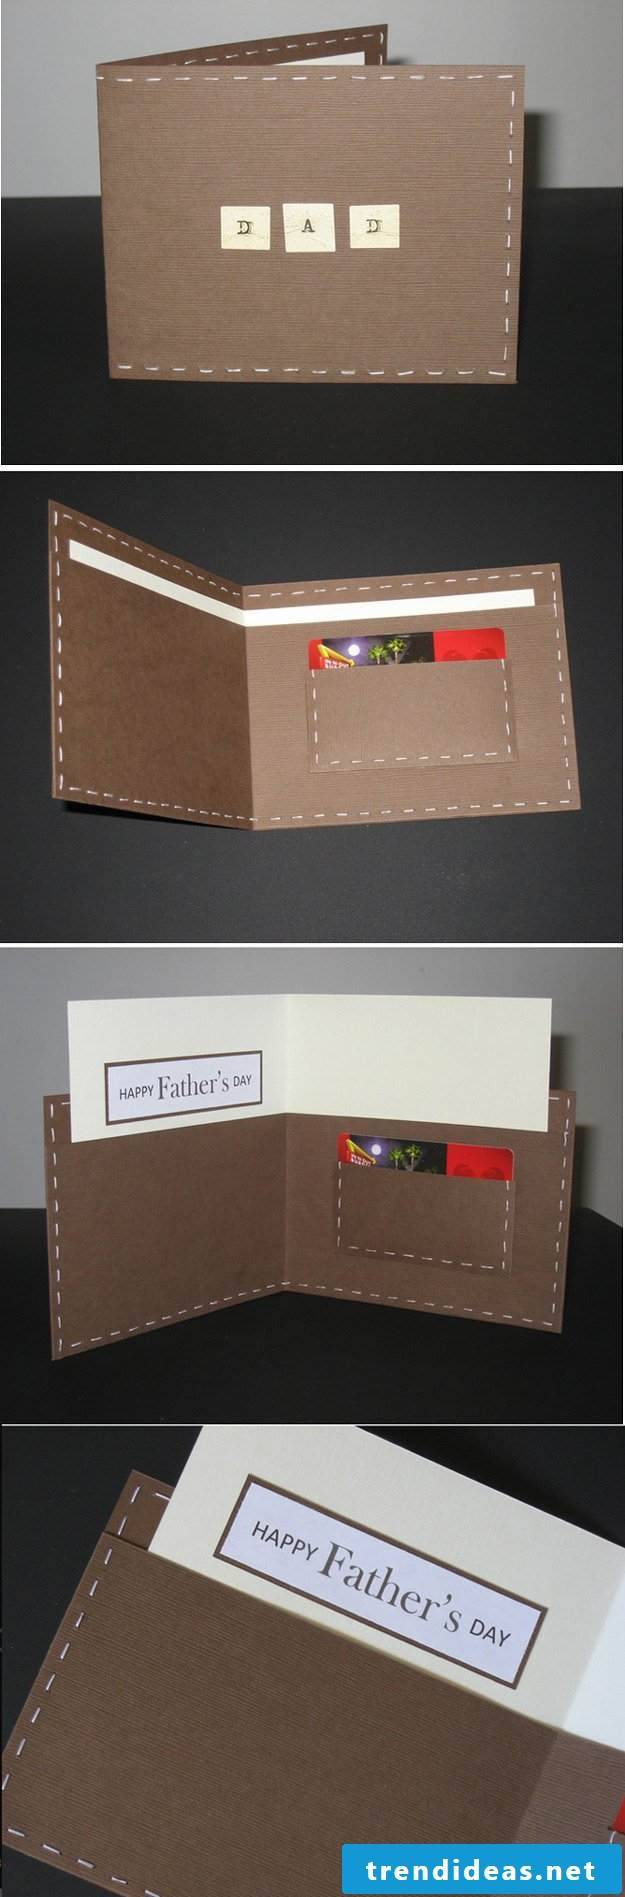 Make a father's day card yourself and wish your father all the best for Father's Day